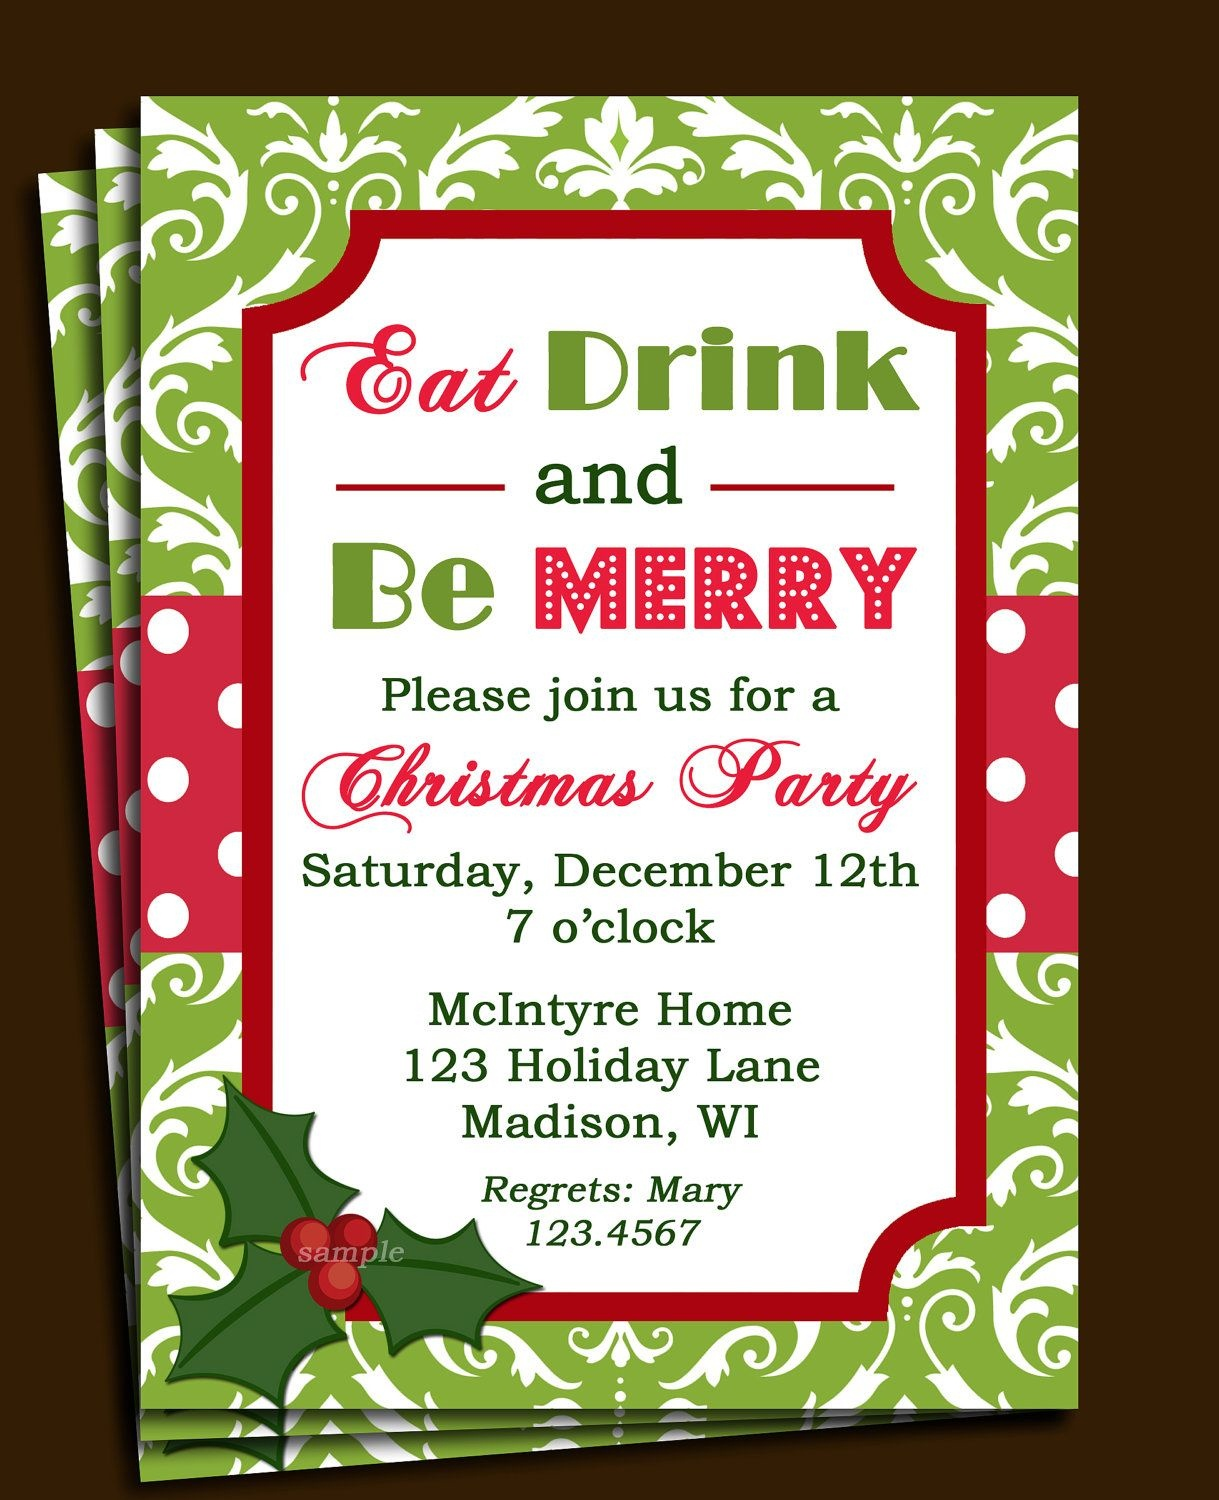 Free Printable Office Christmas Party Invitations | Party Stuff - Free Online Printable Christmas Party Invitations